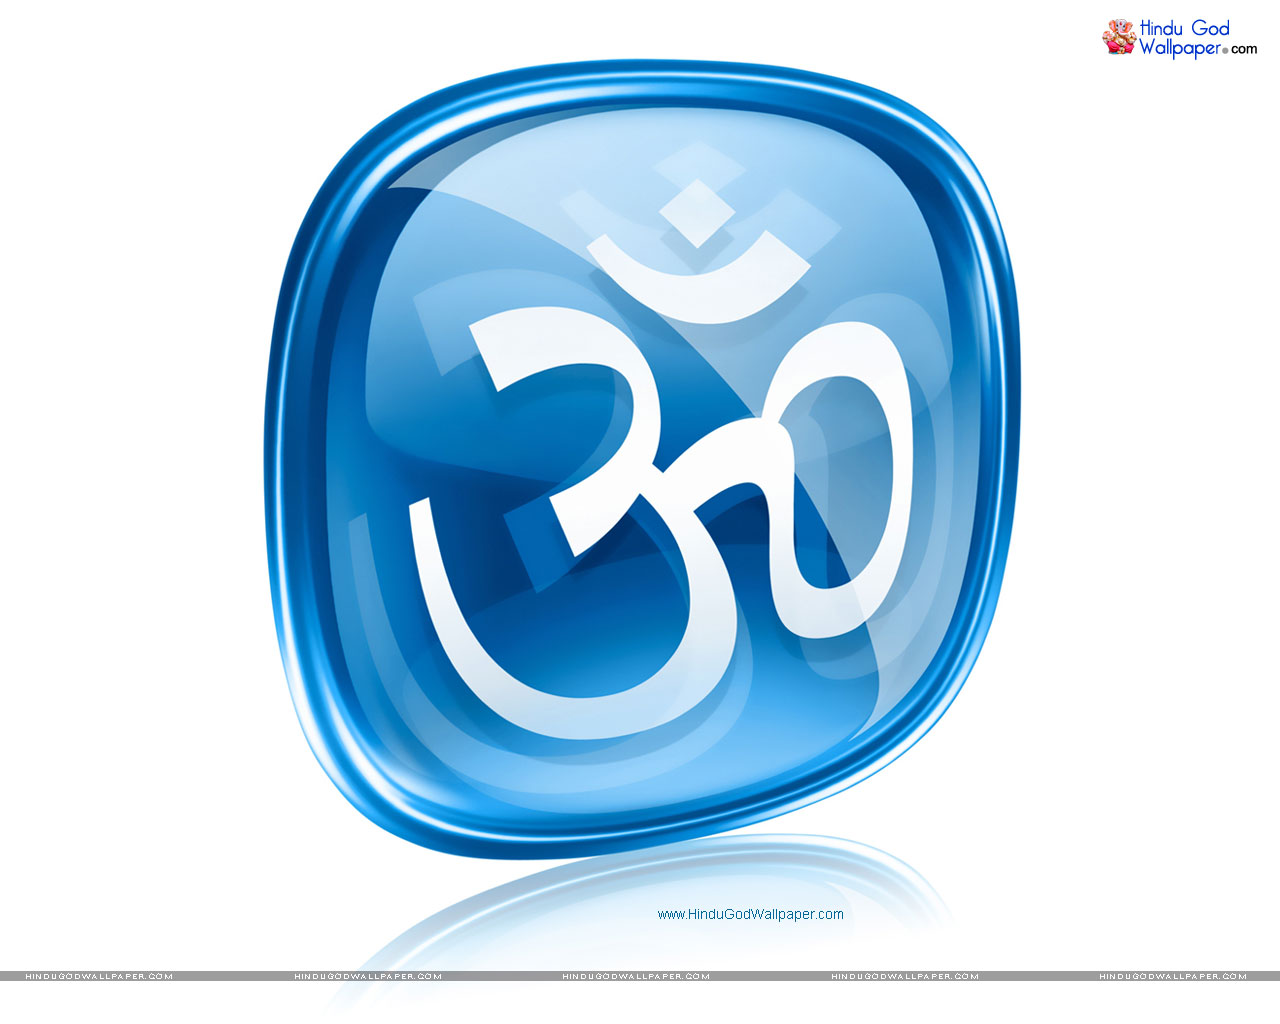 Om Wallpapers U Love God Godulove